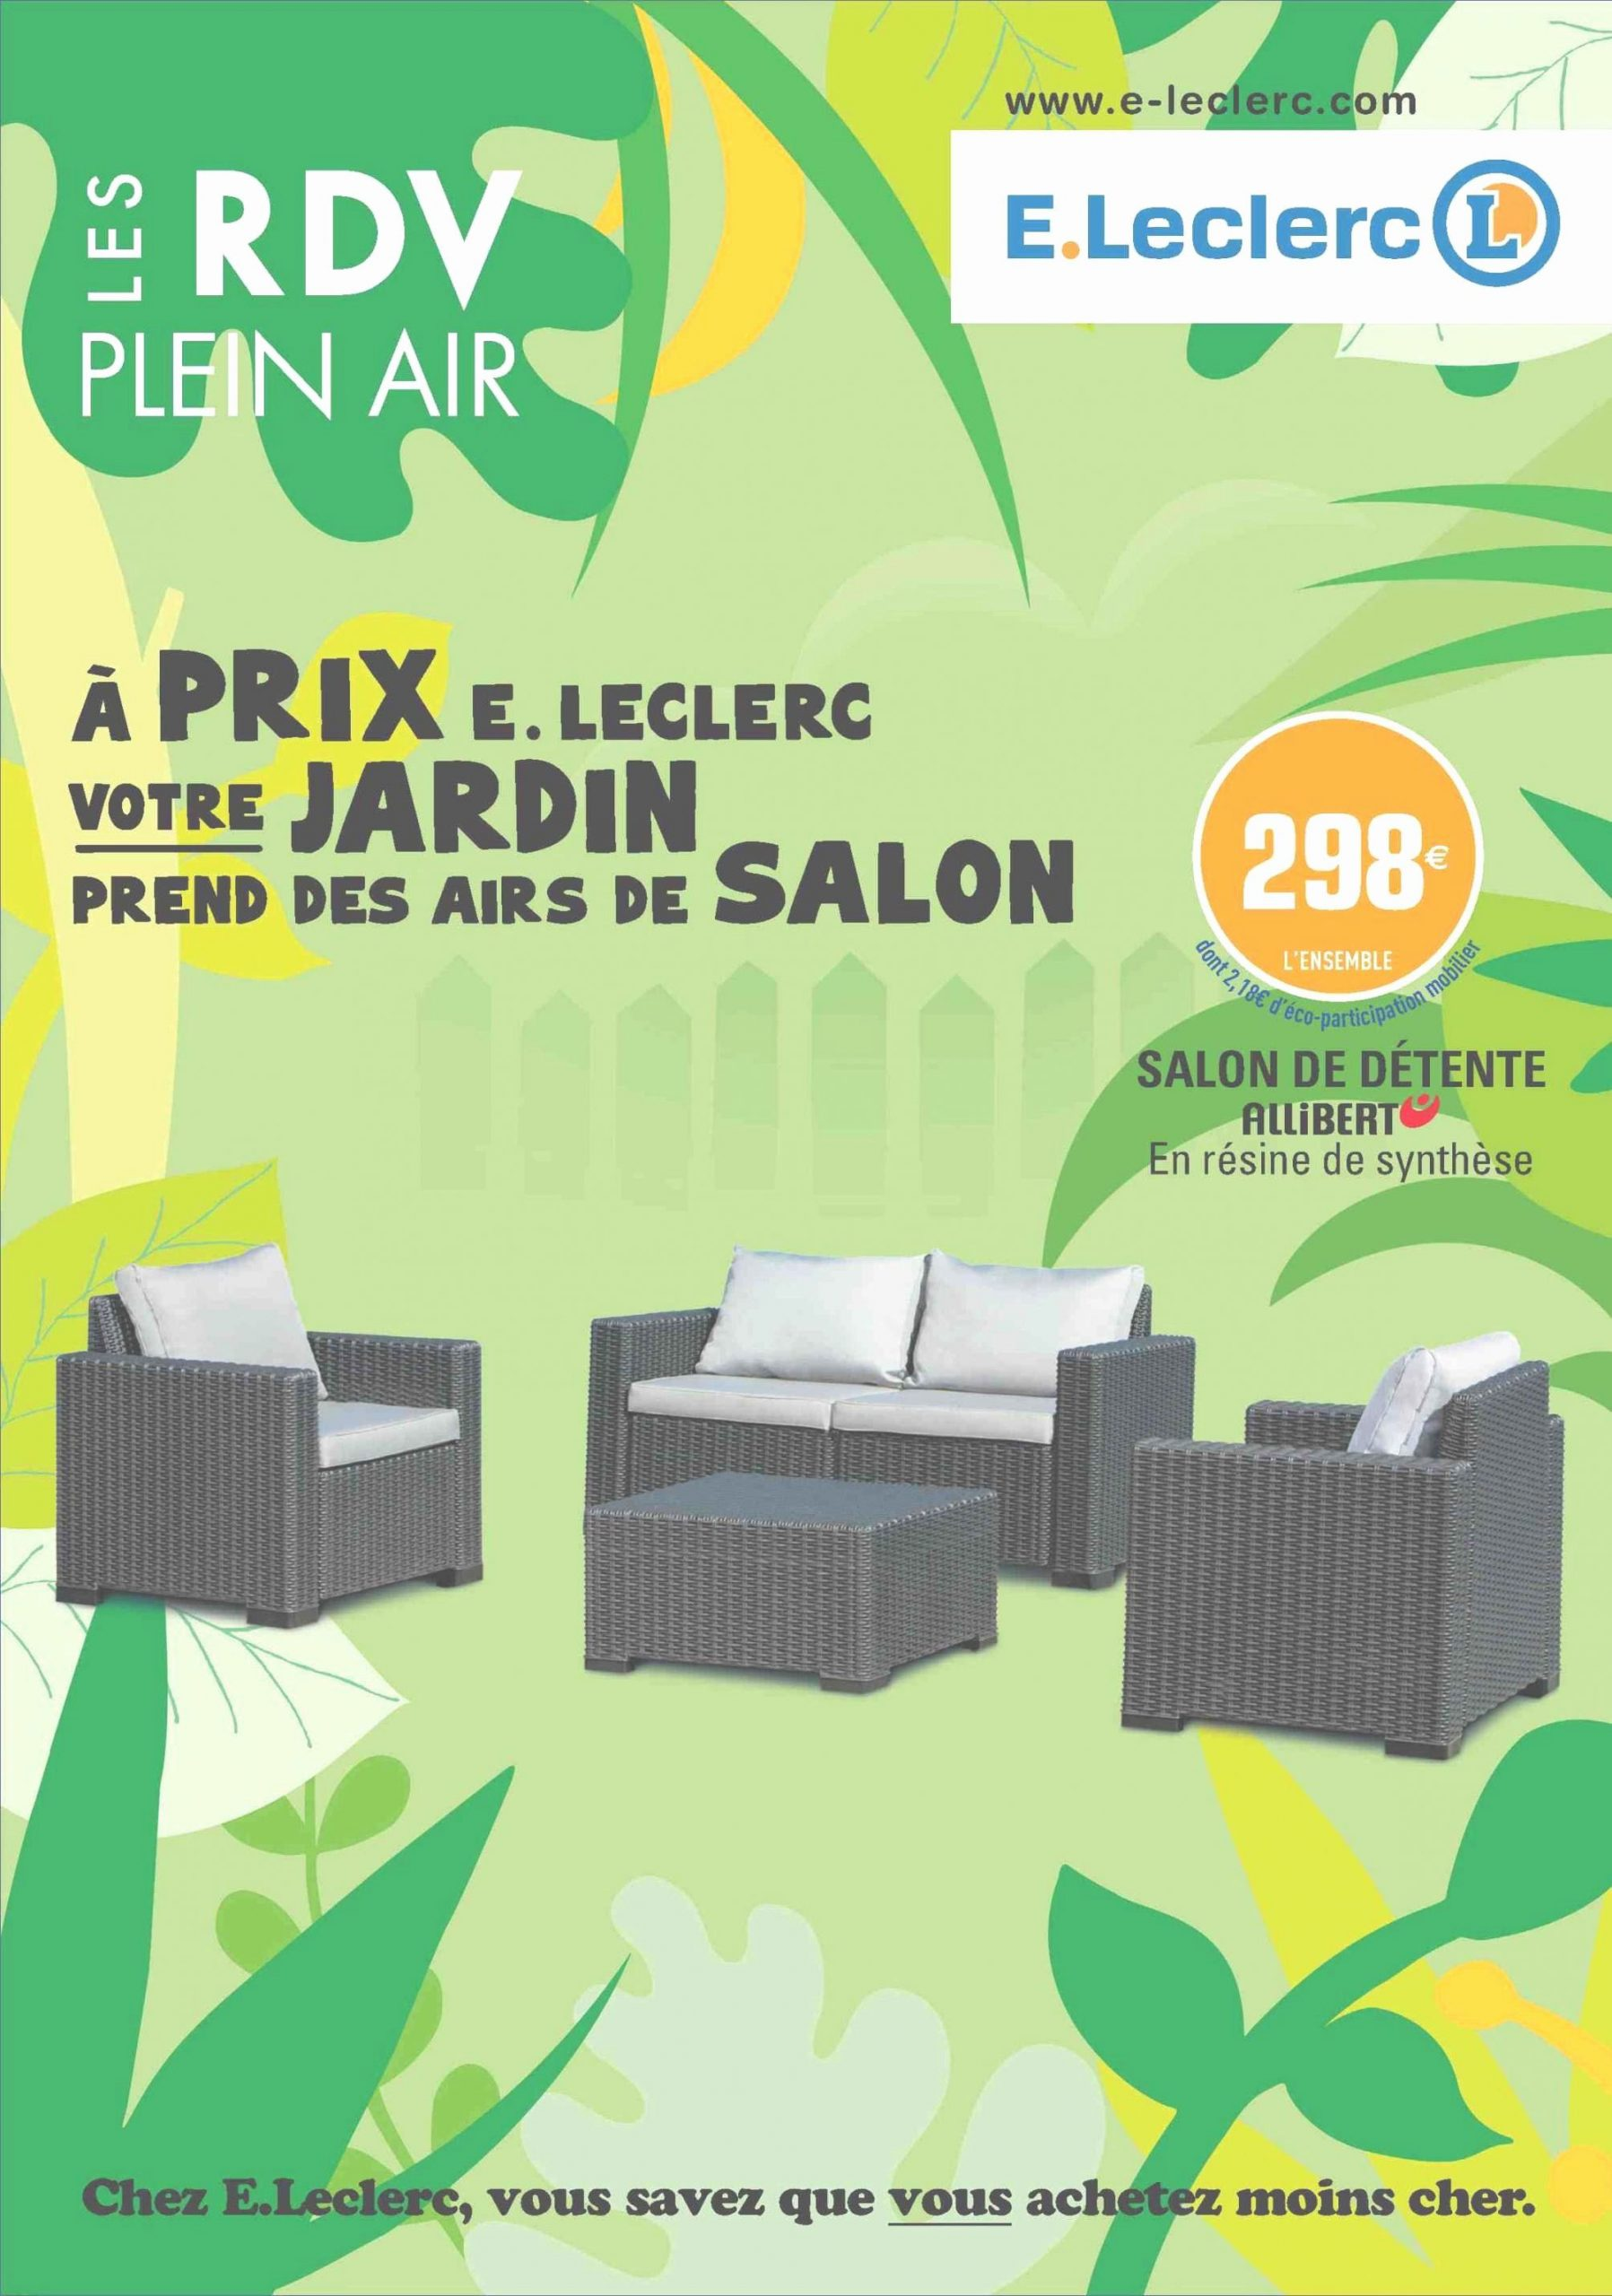 Beautiful Gazon Artificiel Leclerc | Salon De Jardin, Salon ... avec Salon De Jardin.leclerc